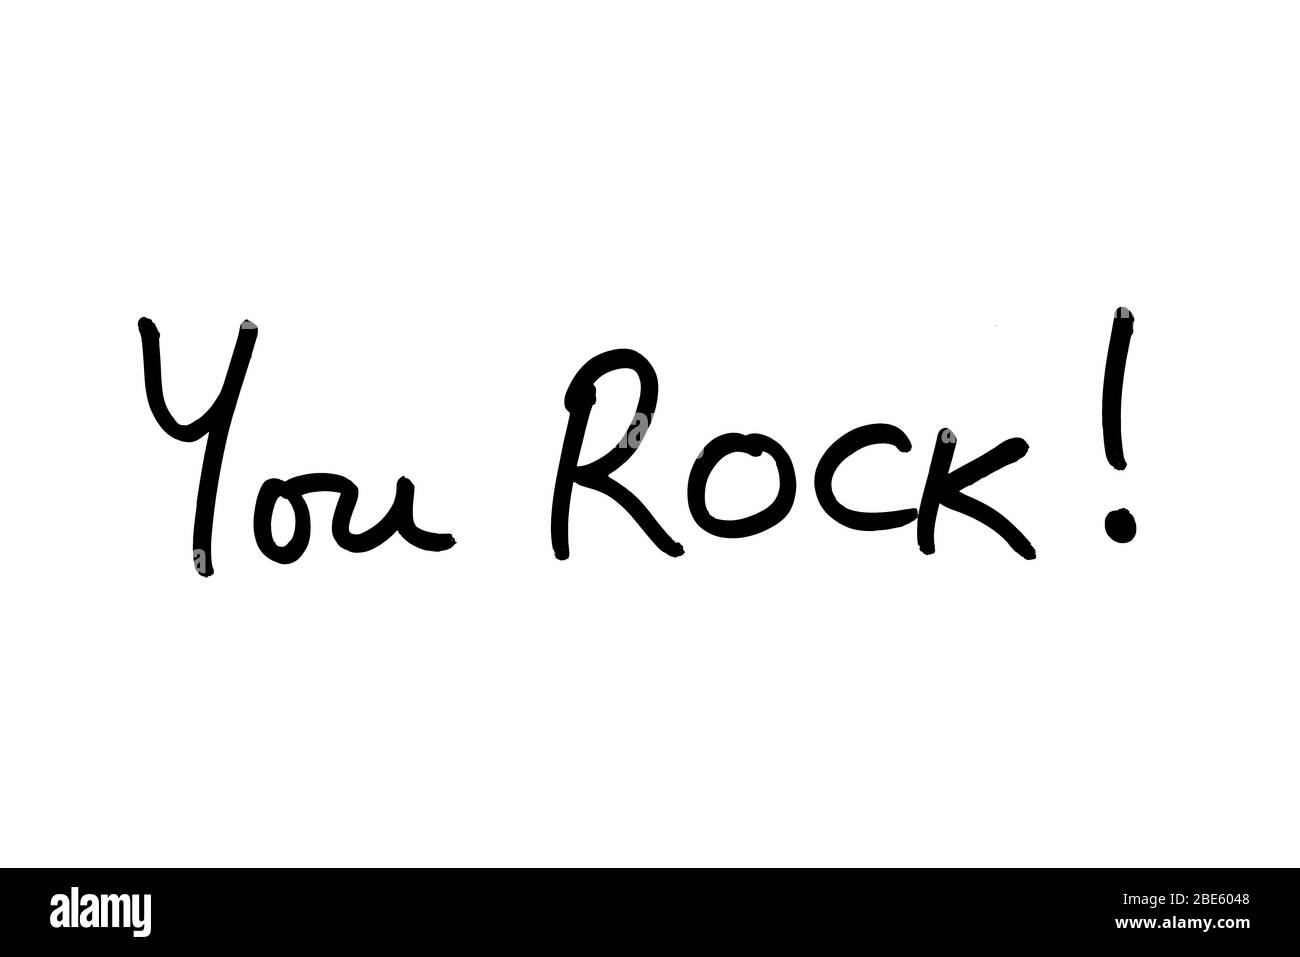 You ROCK! handwritten on a white background. Stock Photo